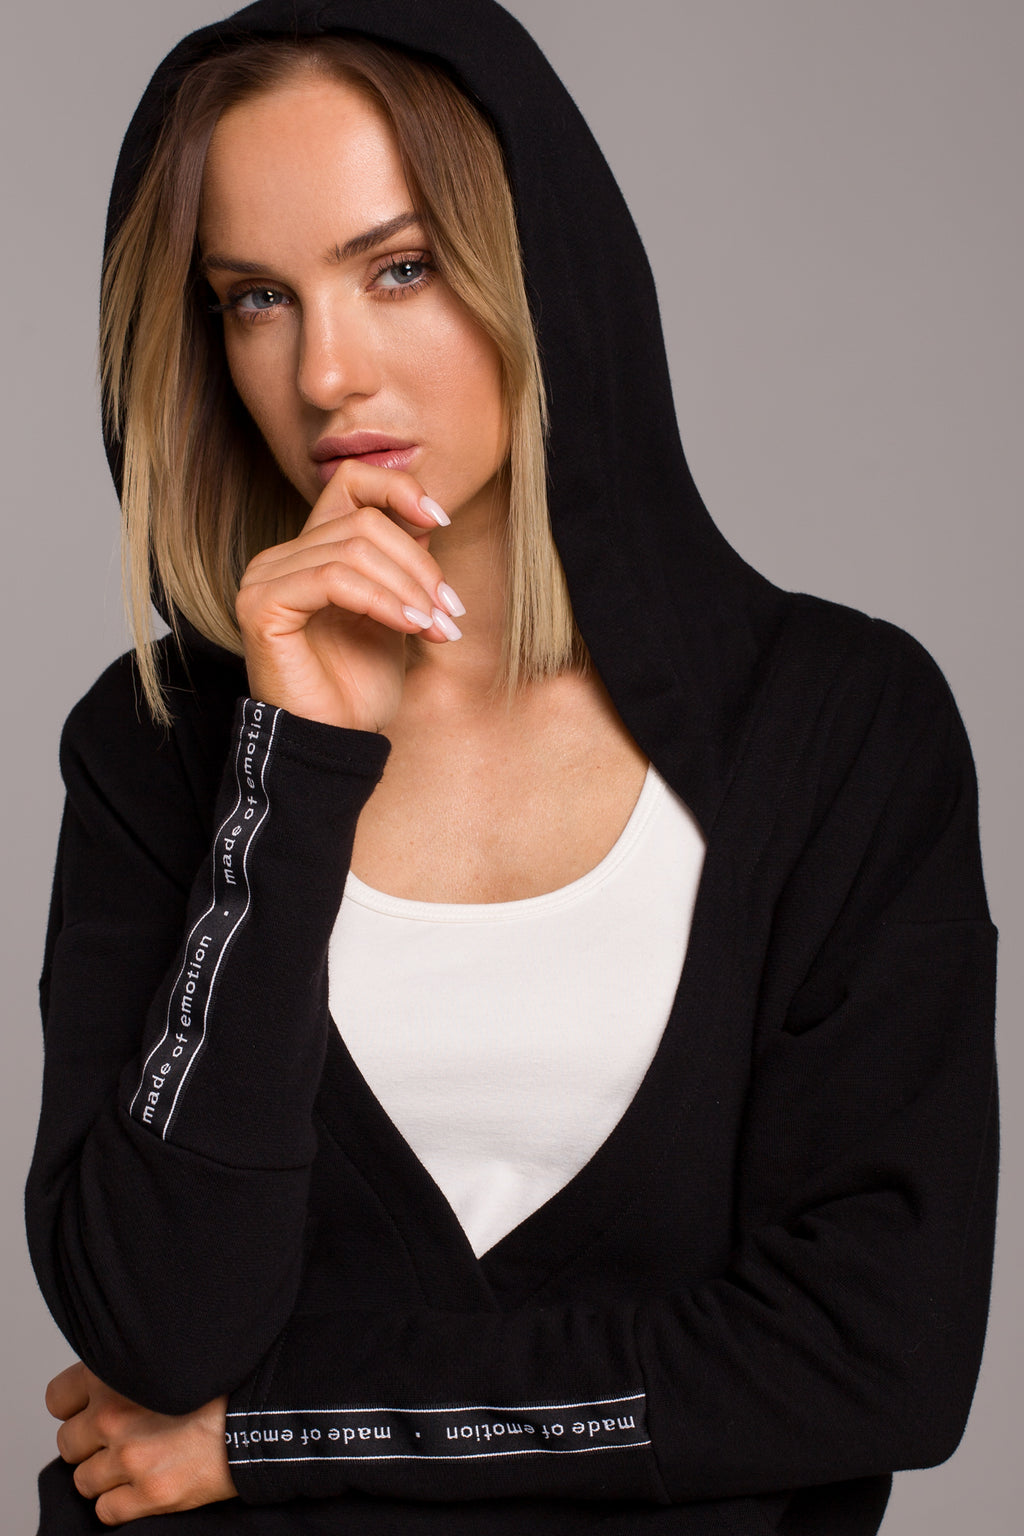 Kangaroo Pocket Black Hoodie With Wrap Front - So Chic Boutique